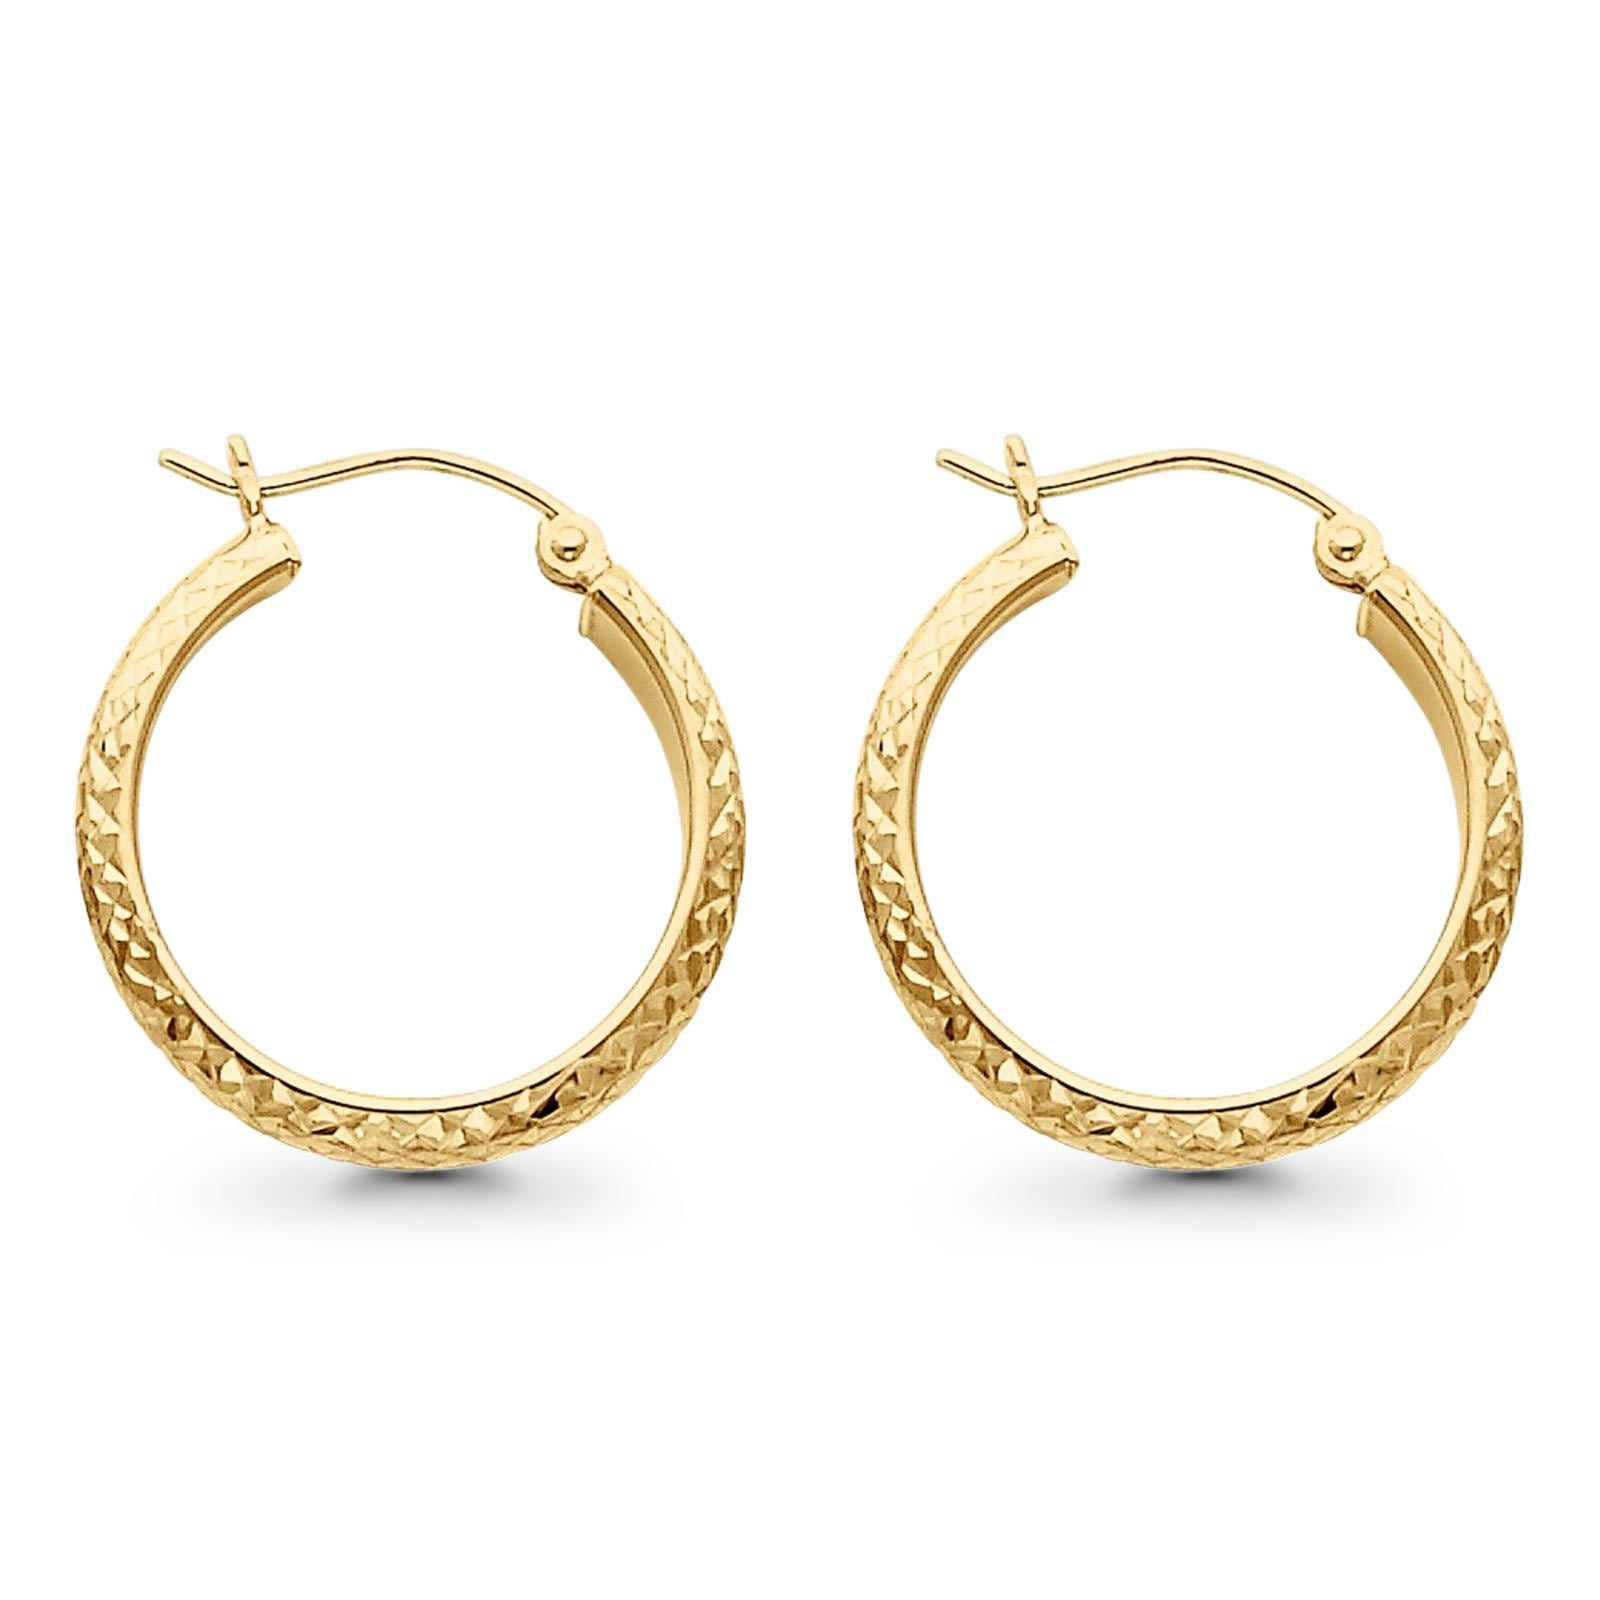 14K Yellow Gold Real 3.5mm Diamond Cut Snap Closure Hoop Earrings Hinged 1.6grams 22mm